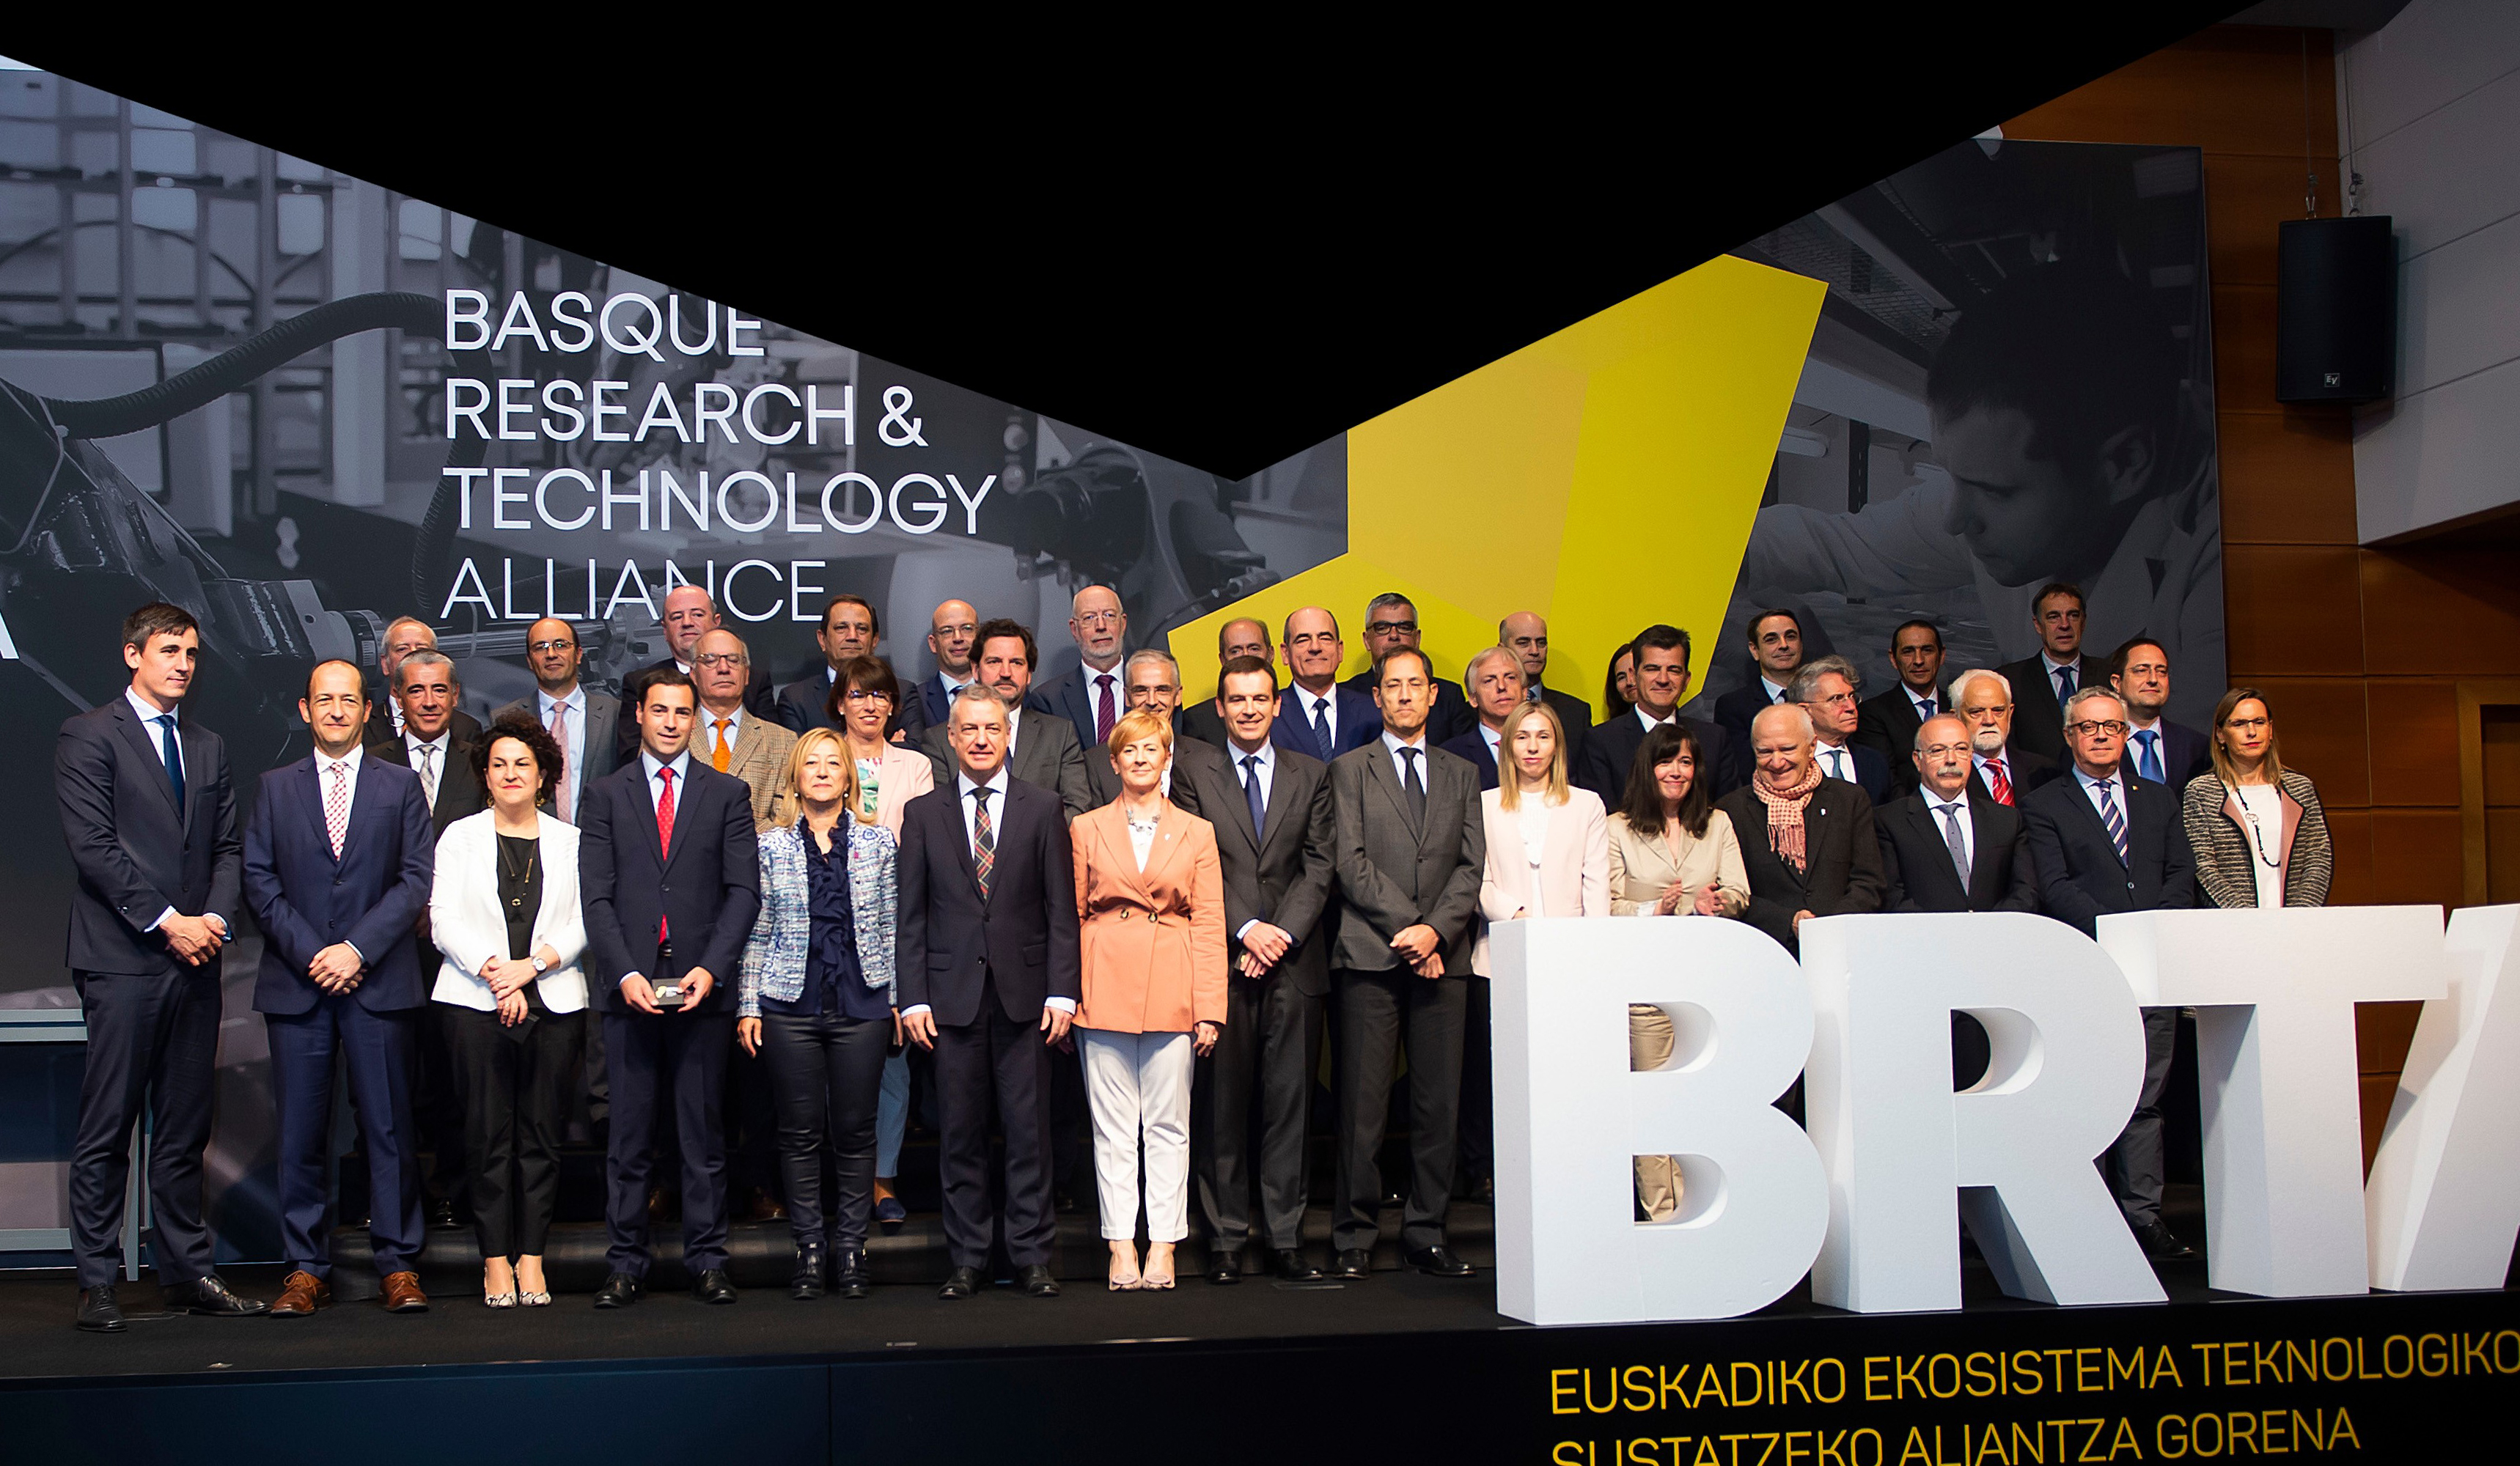 Basque Research & Technology Alliance